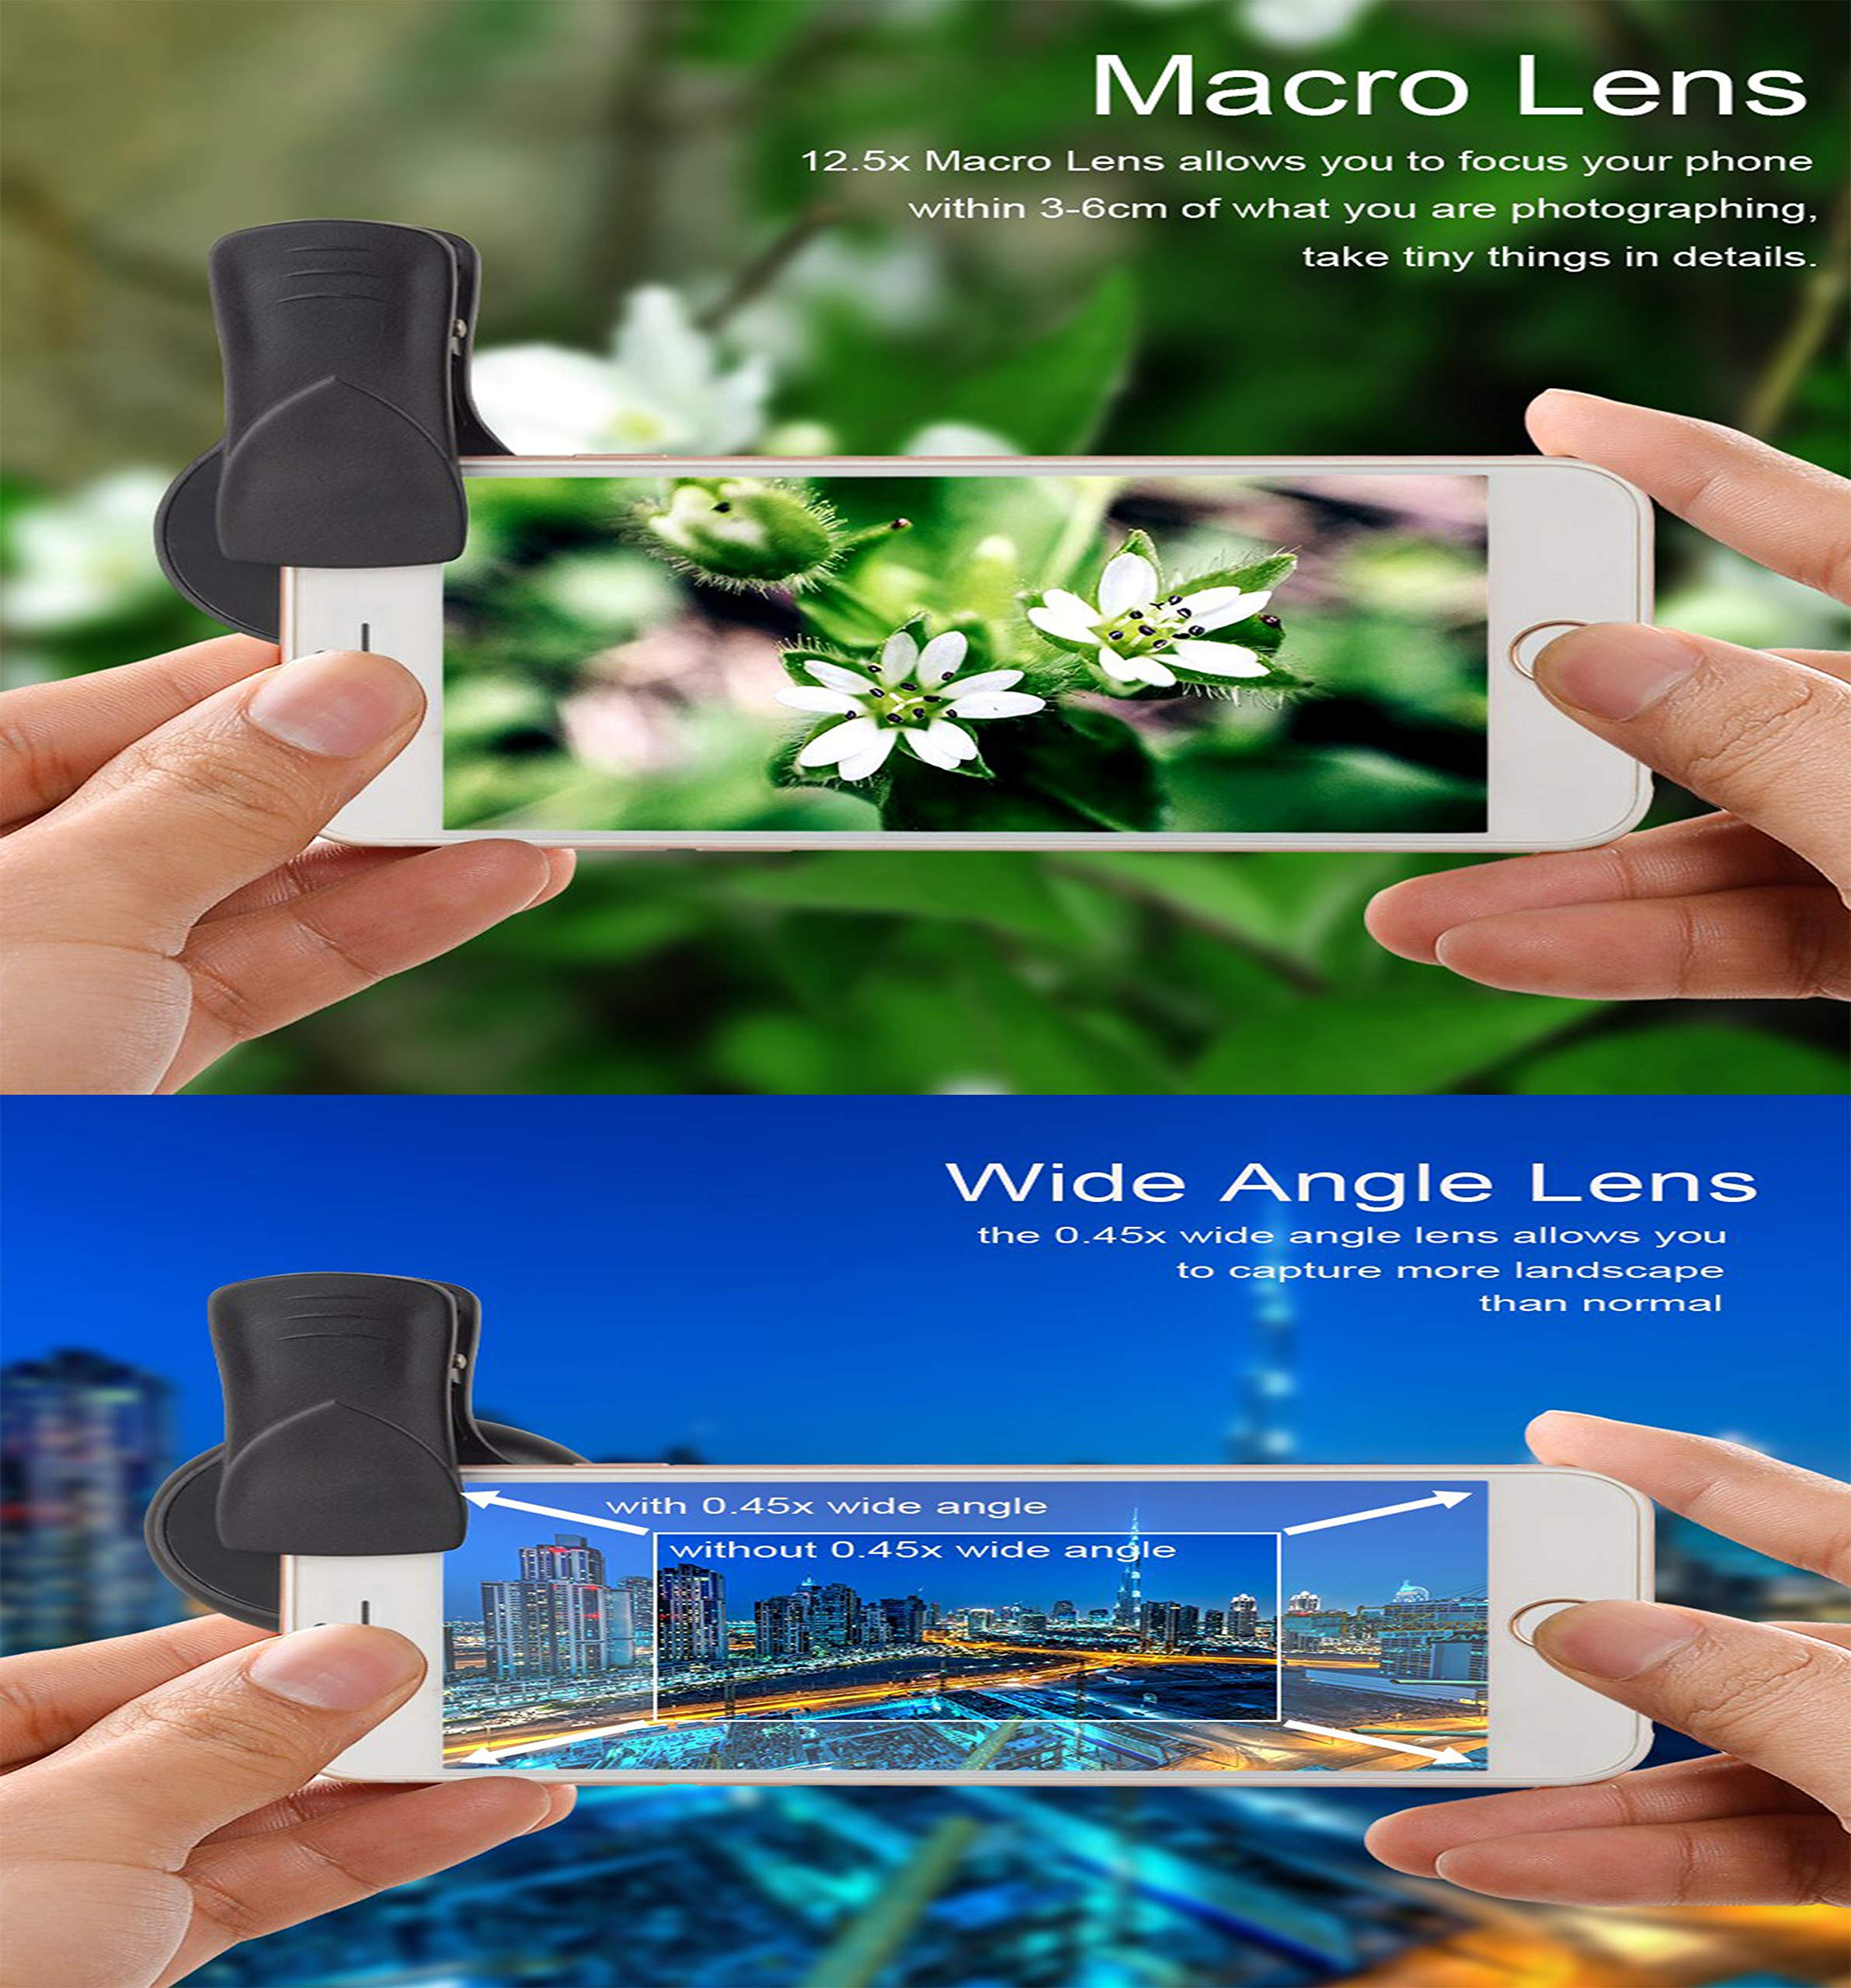 PIANUO Pro Lens Kit for iPhone and Android 0.45X Super Wide Angle Lens & 12.5X Macro Lens 2 in 1 HD Cell Phone Camera Lens Kit for iPhone X 8 7 6S 6S Plus 6 5S Samsung Android Smartphones